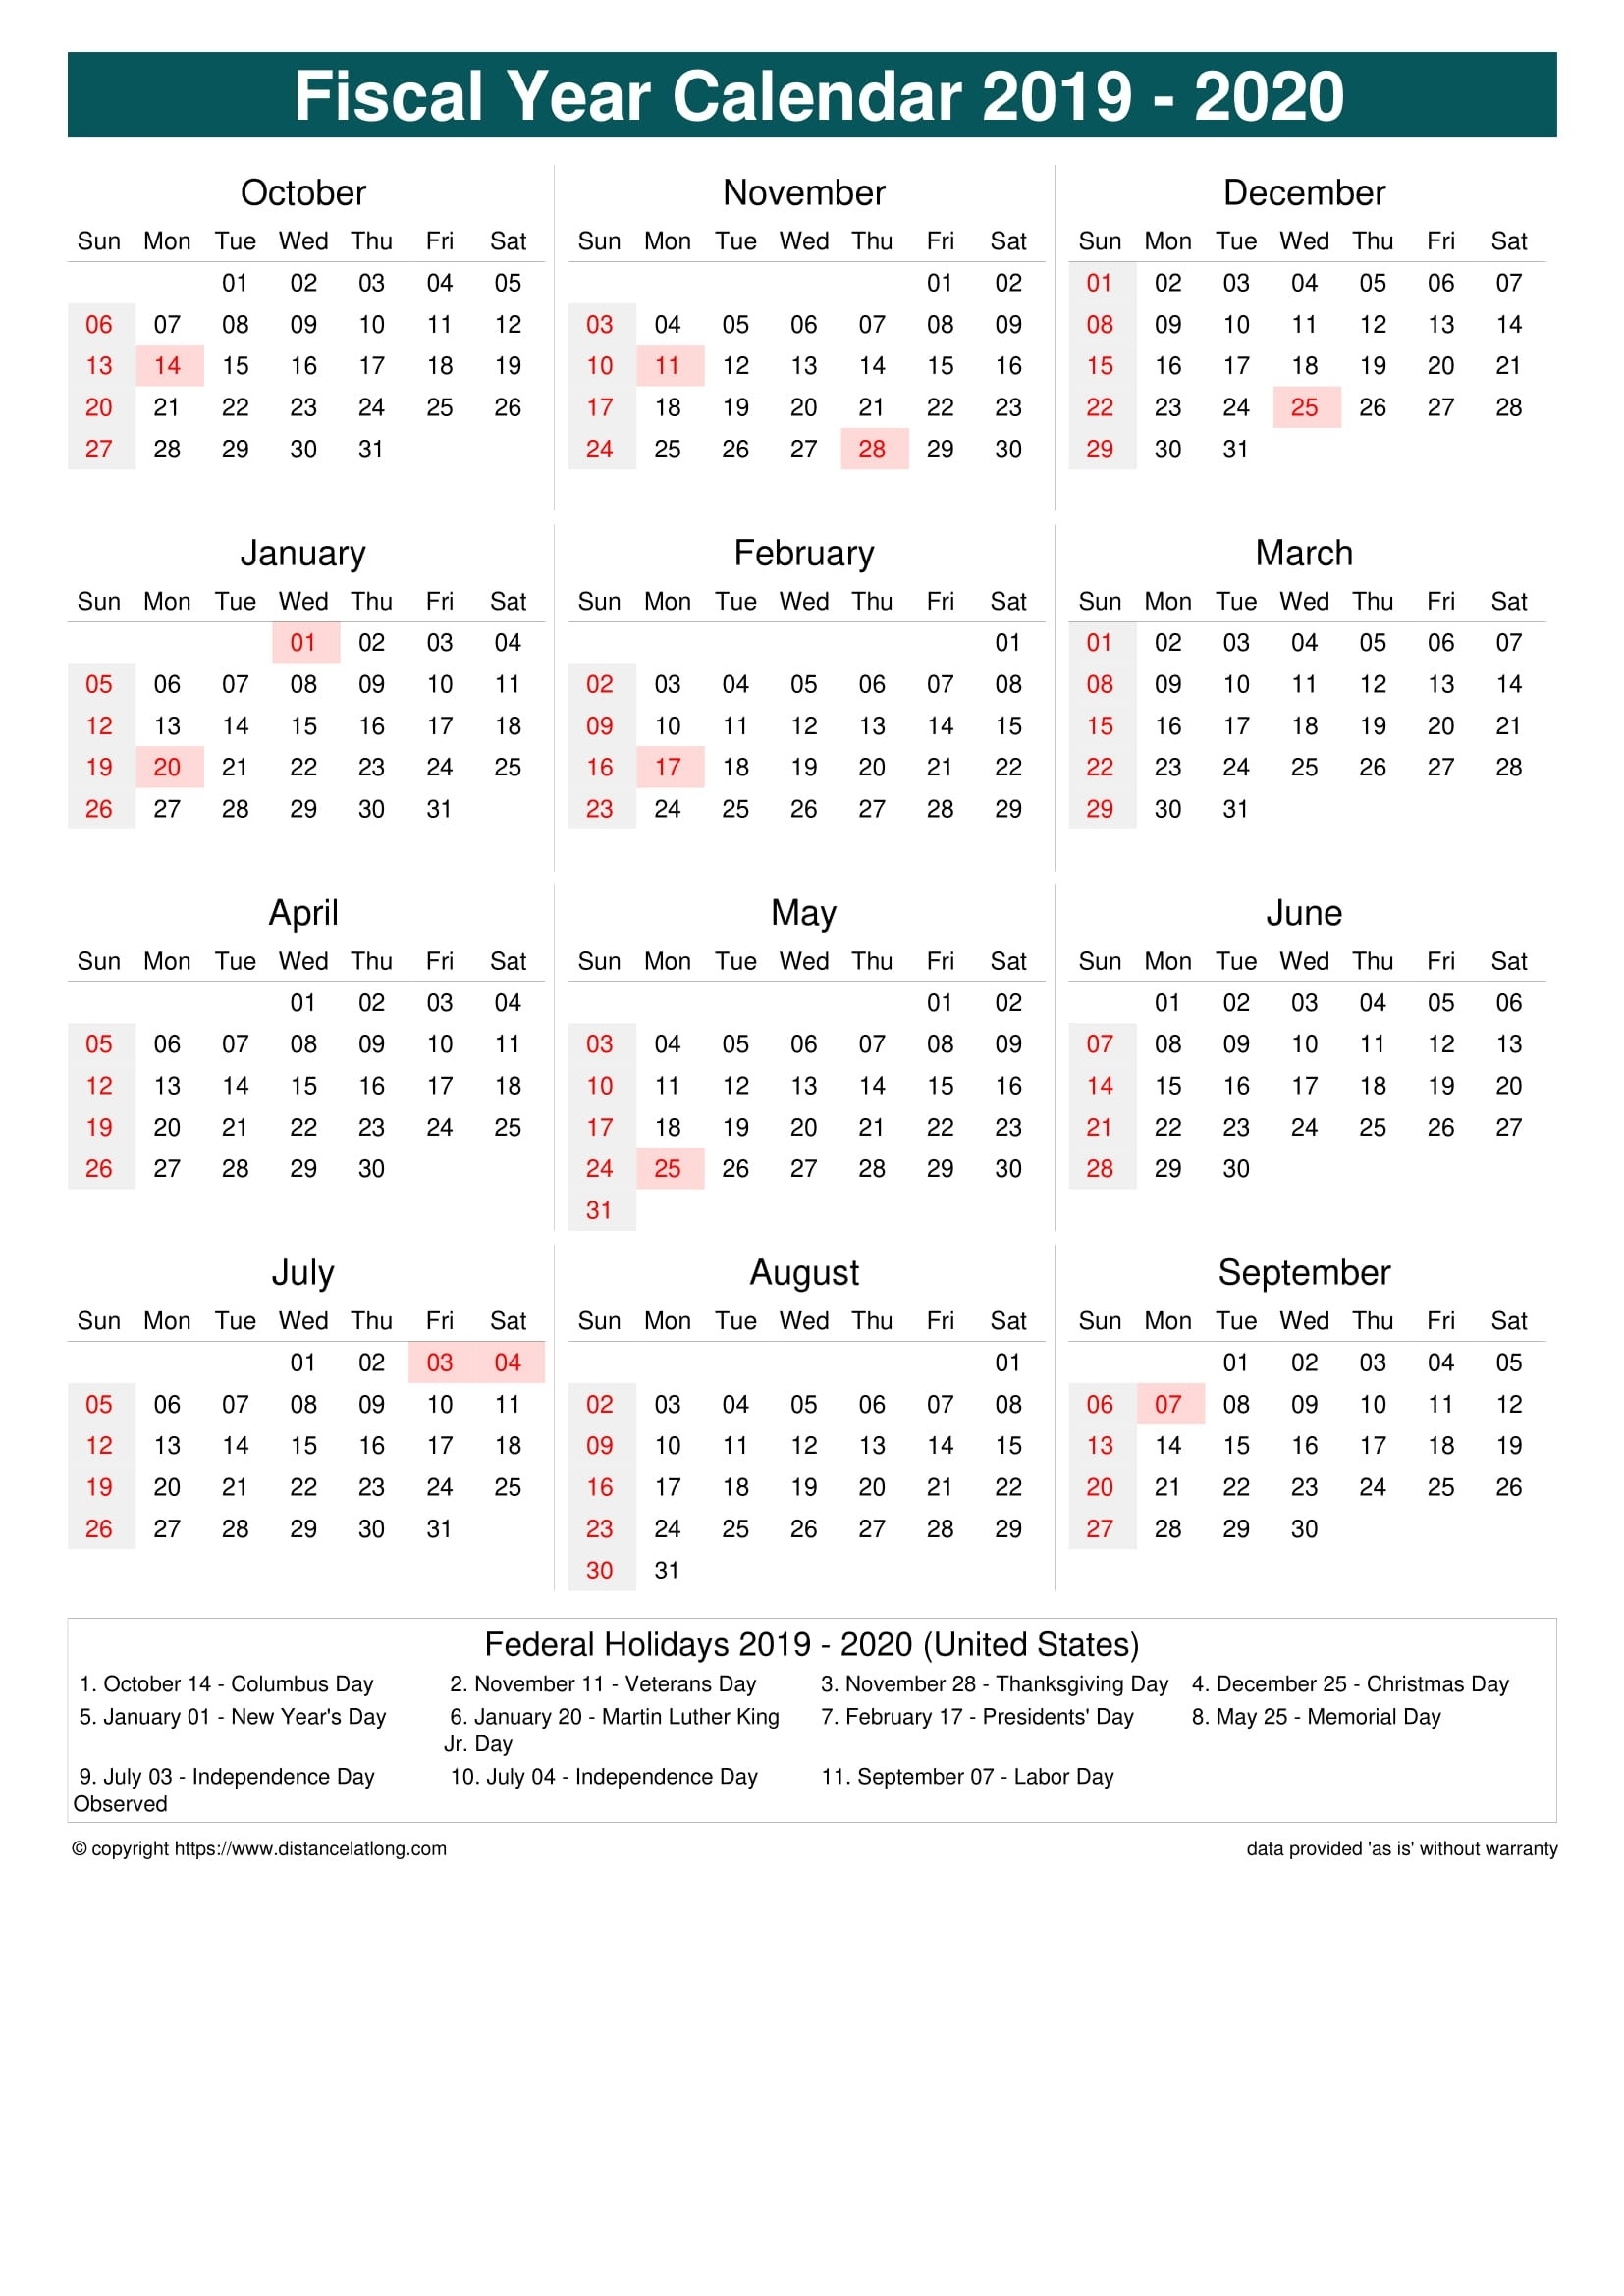 Fiscal Year 2019-2020 Calendar Templates, Free Printable  Australia What Are The Dates For The 18/19 Financial Year